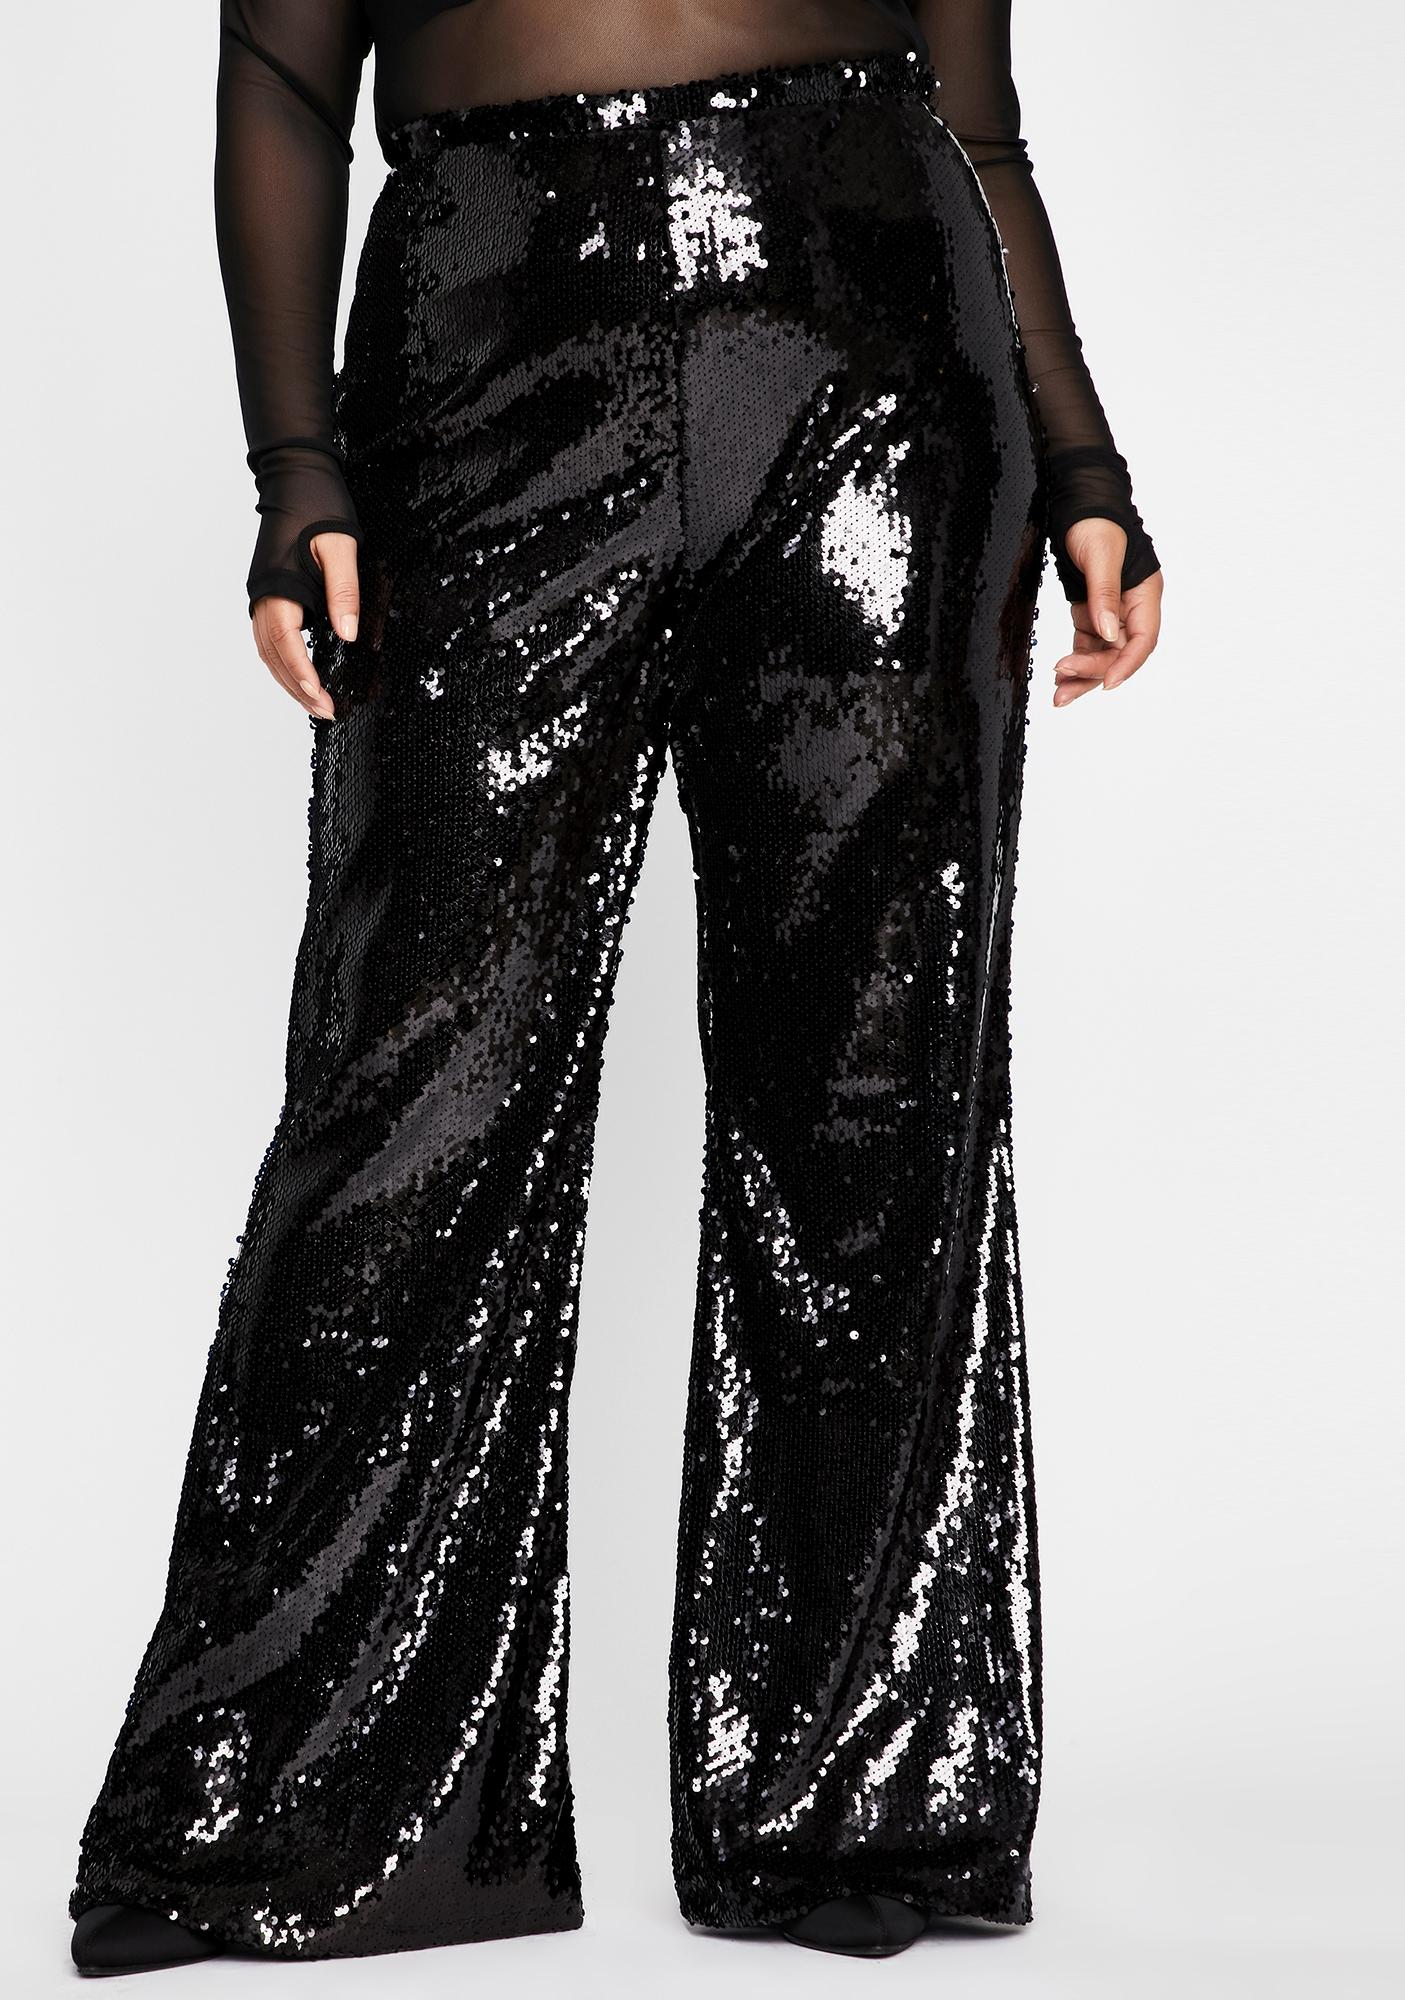 She's Wicked Superficial AF Sequin Flares